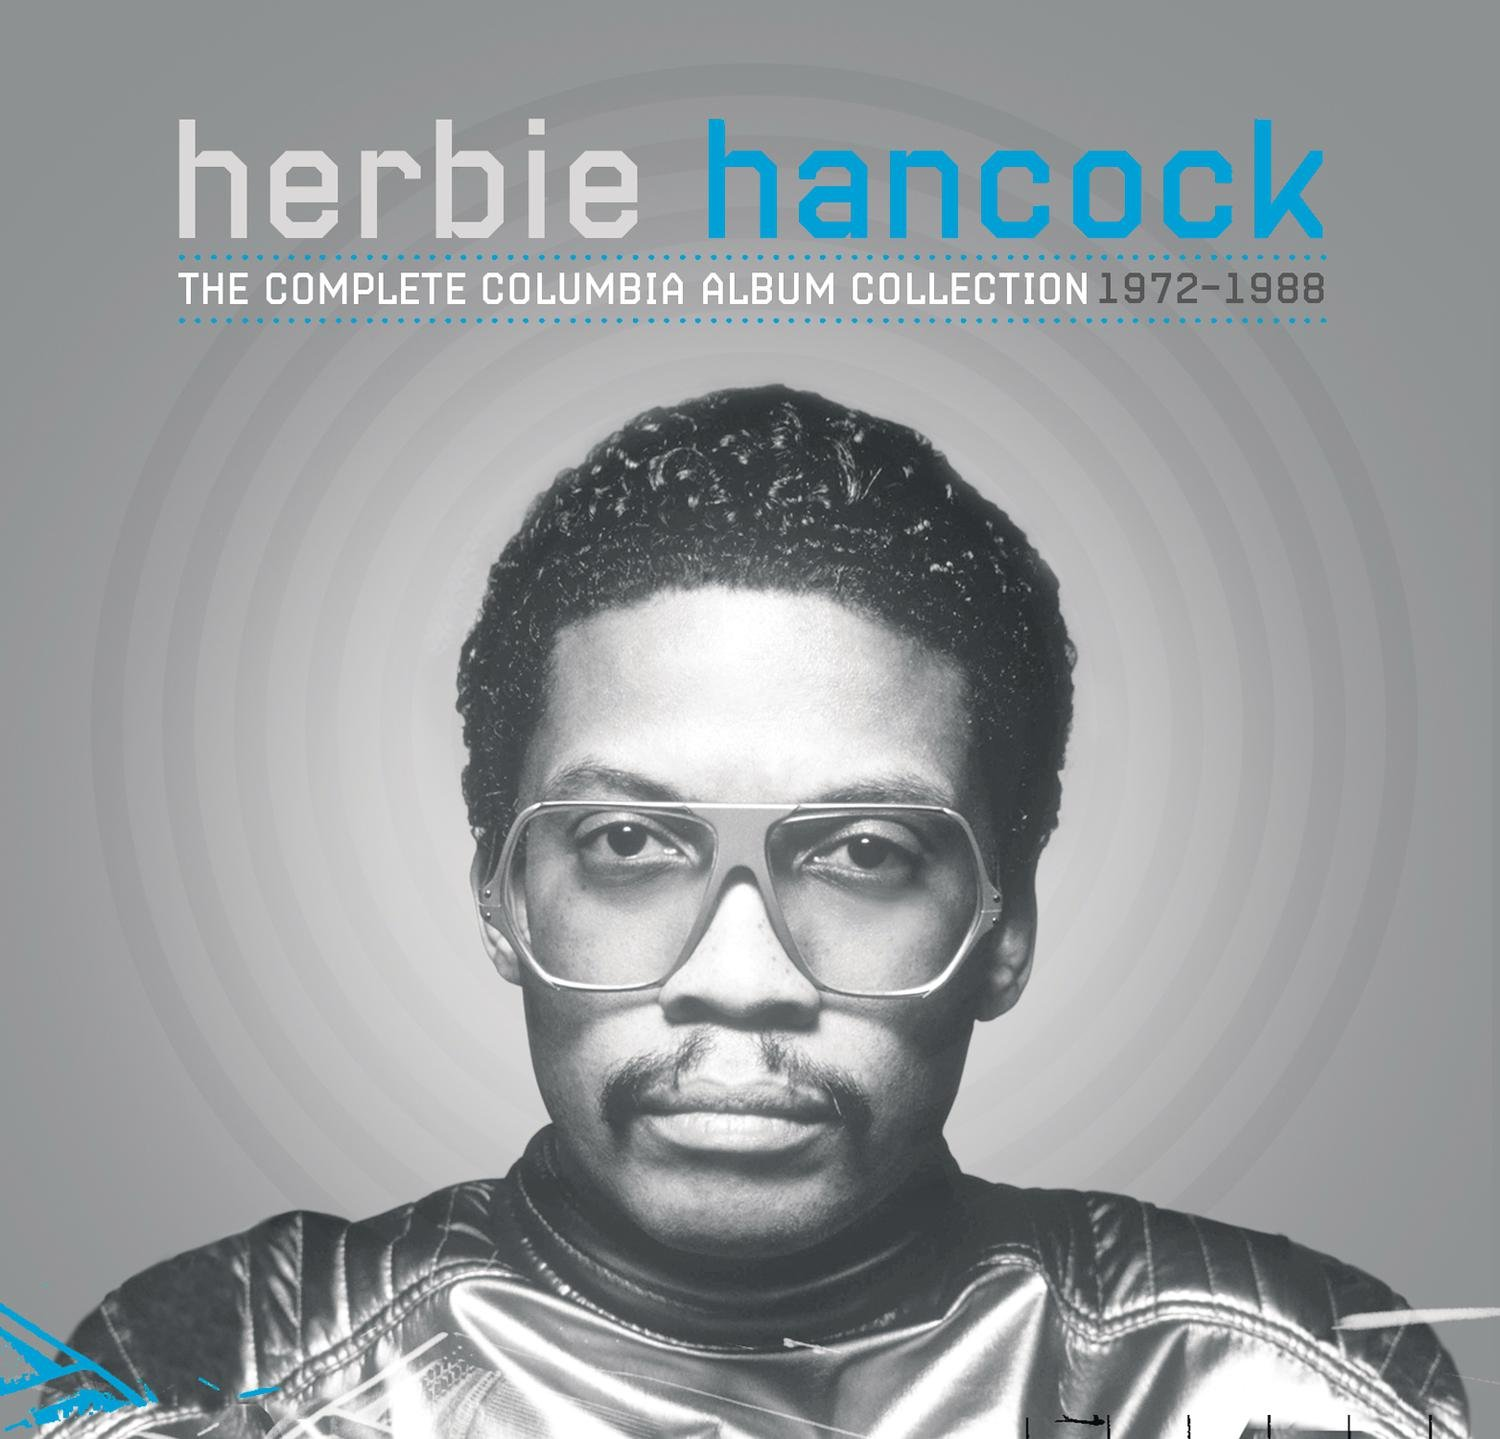 Herbie Hancock: The Complete Columbia Album Collection 1972-1988